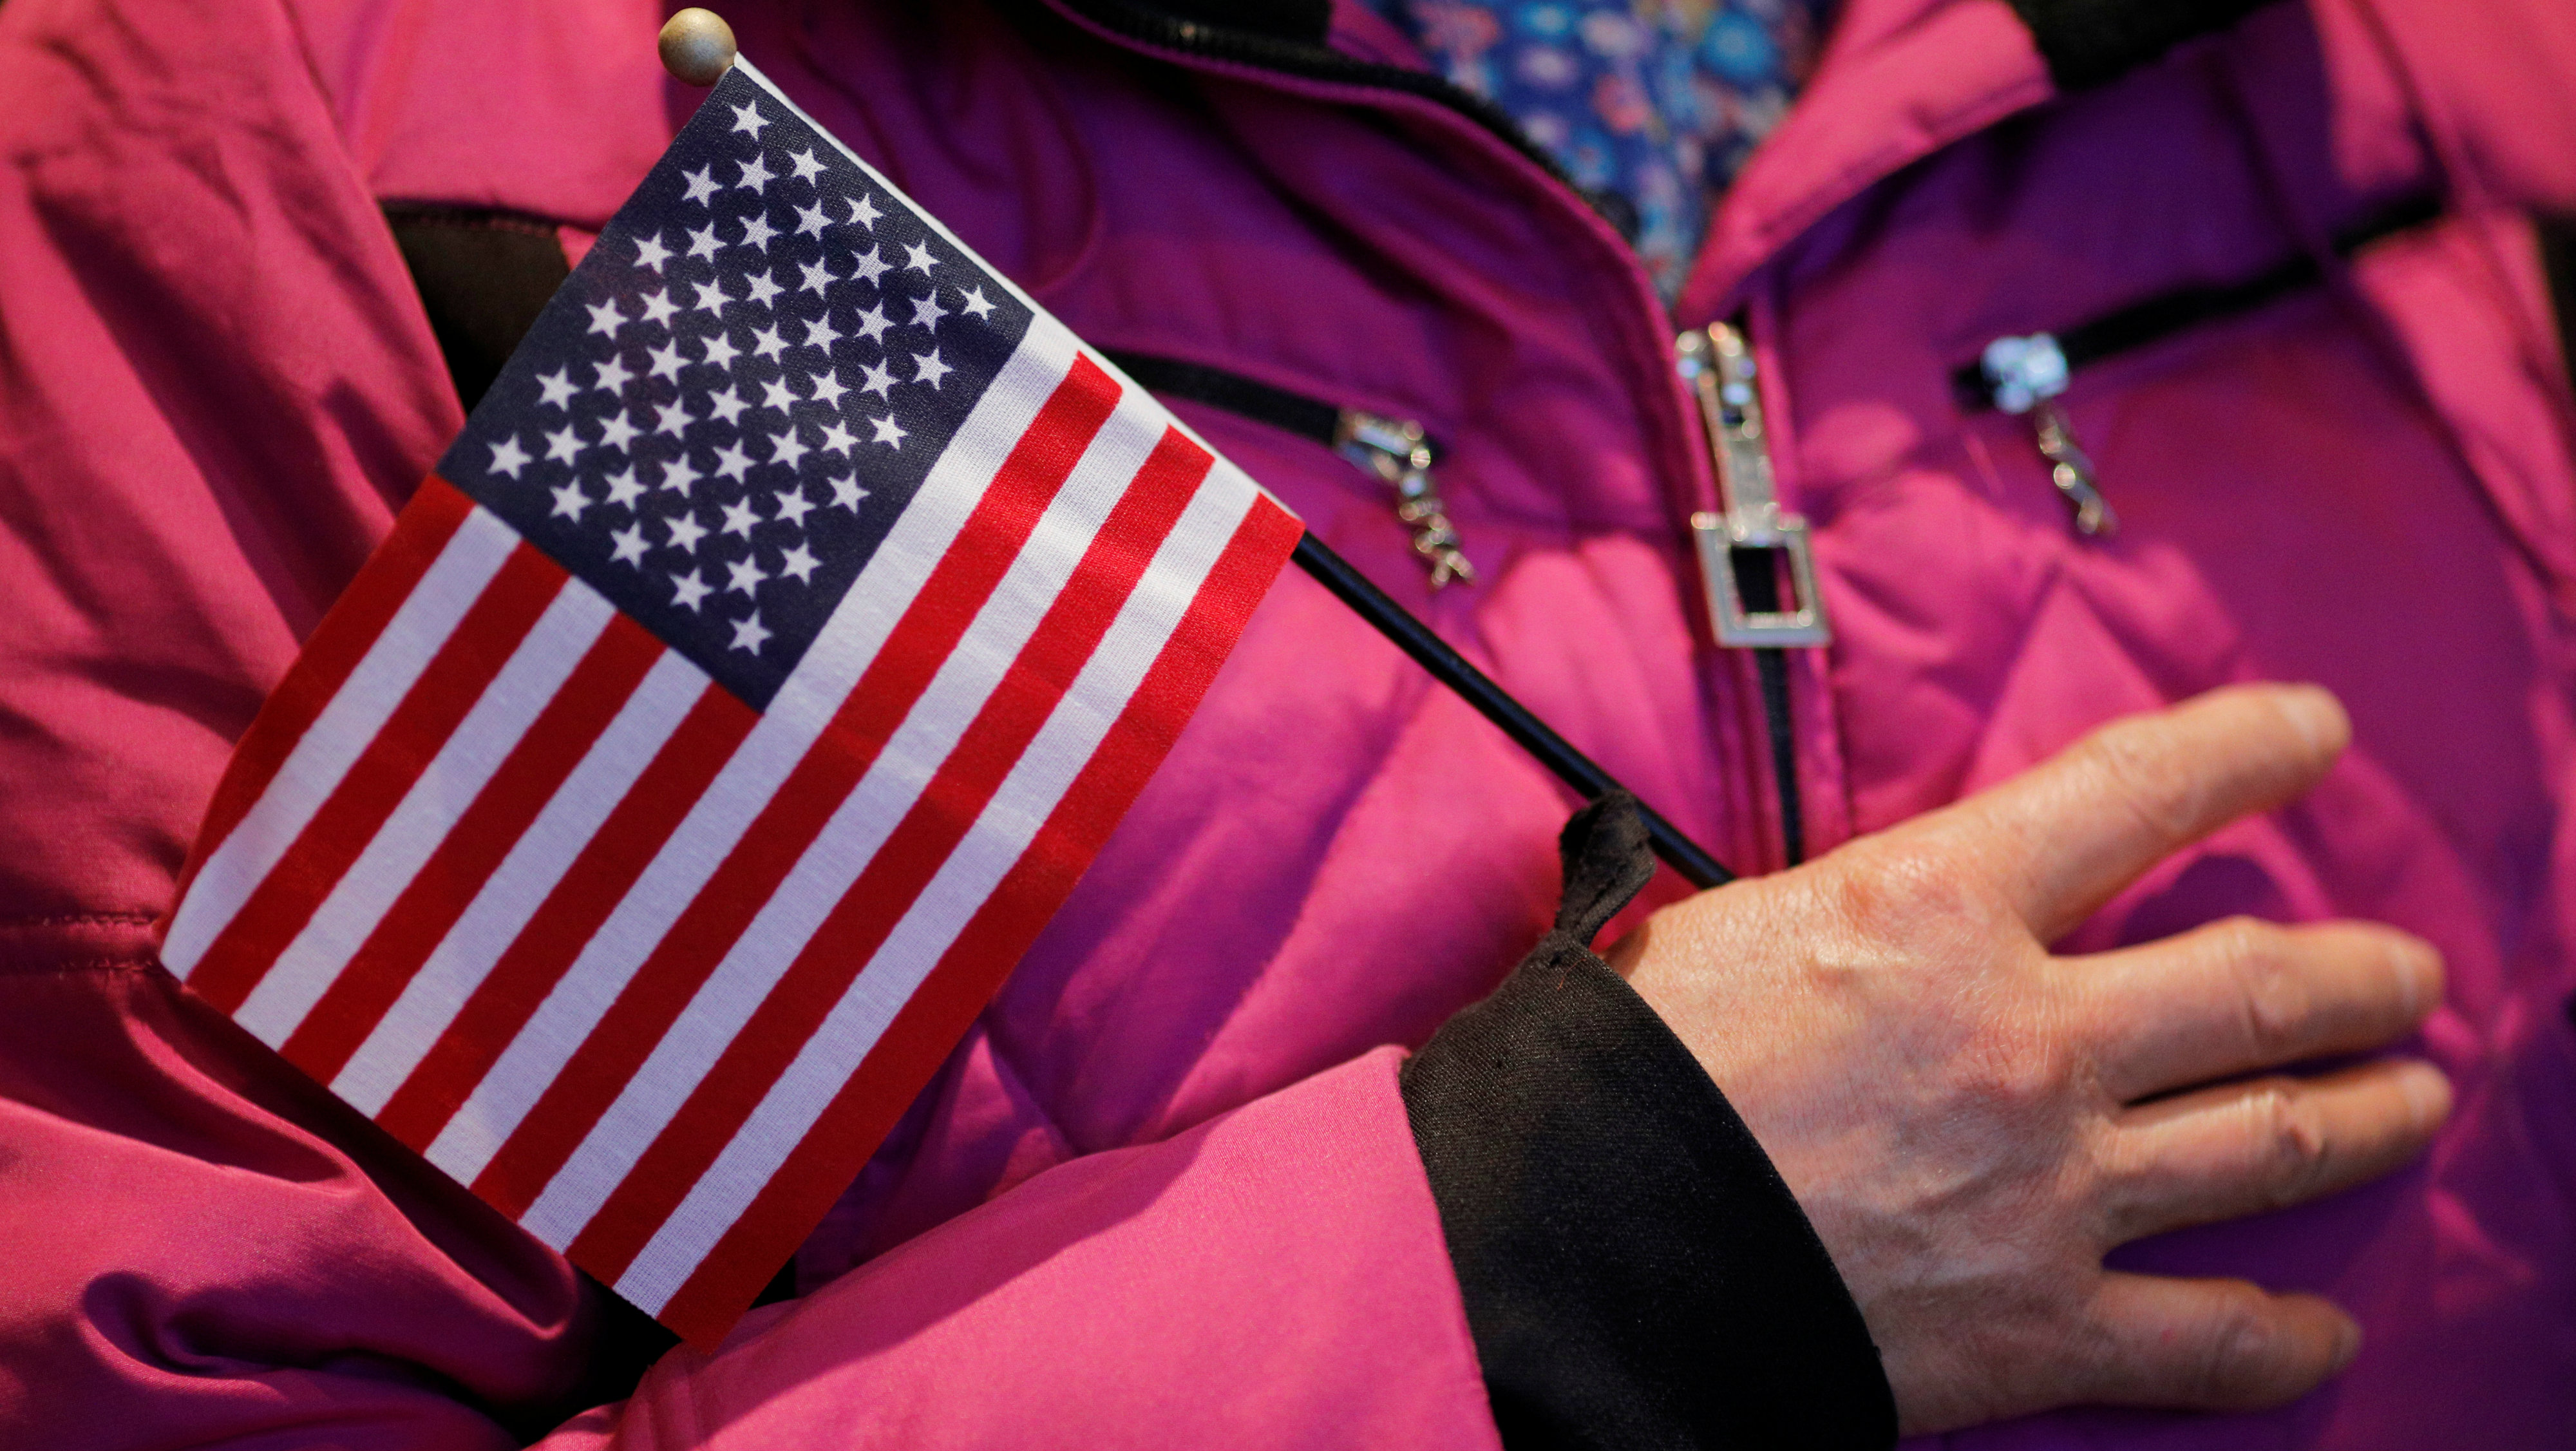 Seventy-three year-old Dianrong Wang of China holds a U.S. flag as the National Anthem is sung during a citizenship ceremony at the John F. Kennedy Presidential Library in Boston, Massachusetts, U.S. February 8, 2017.